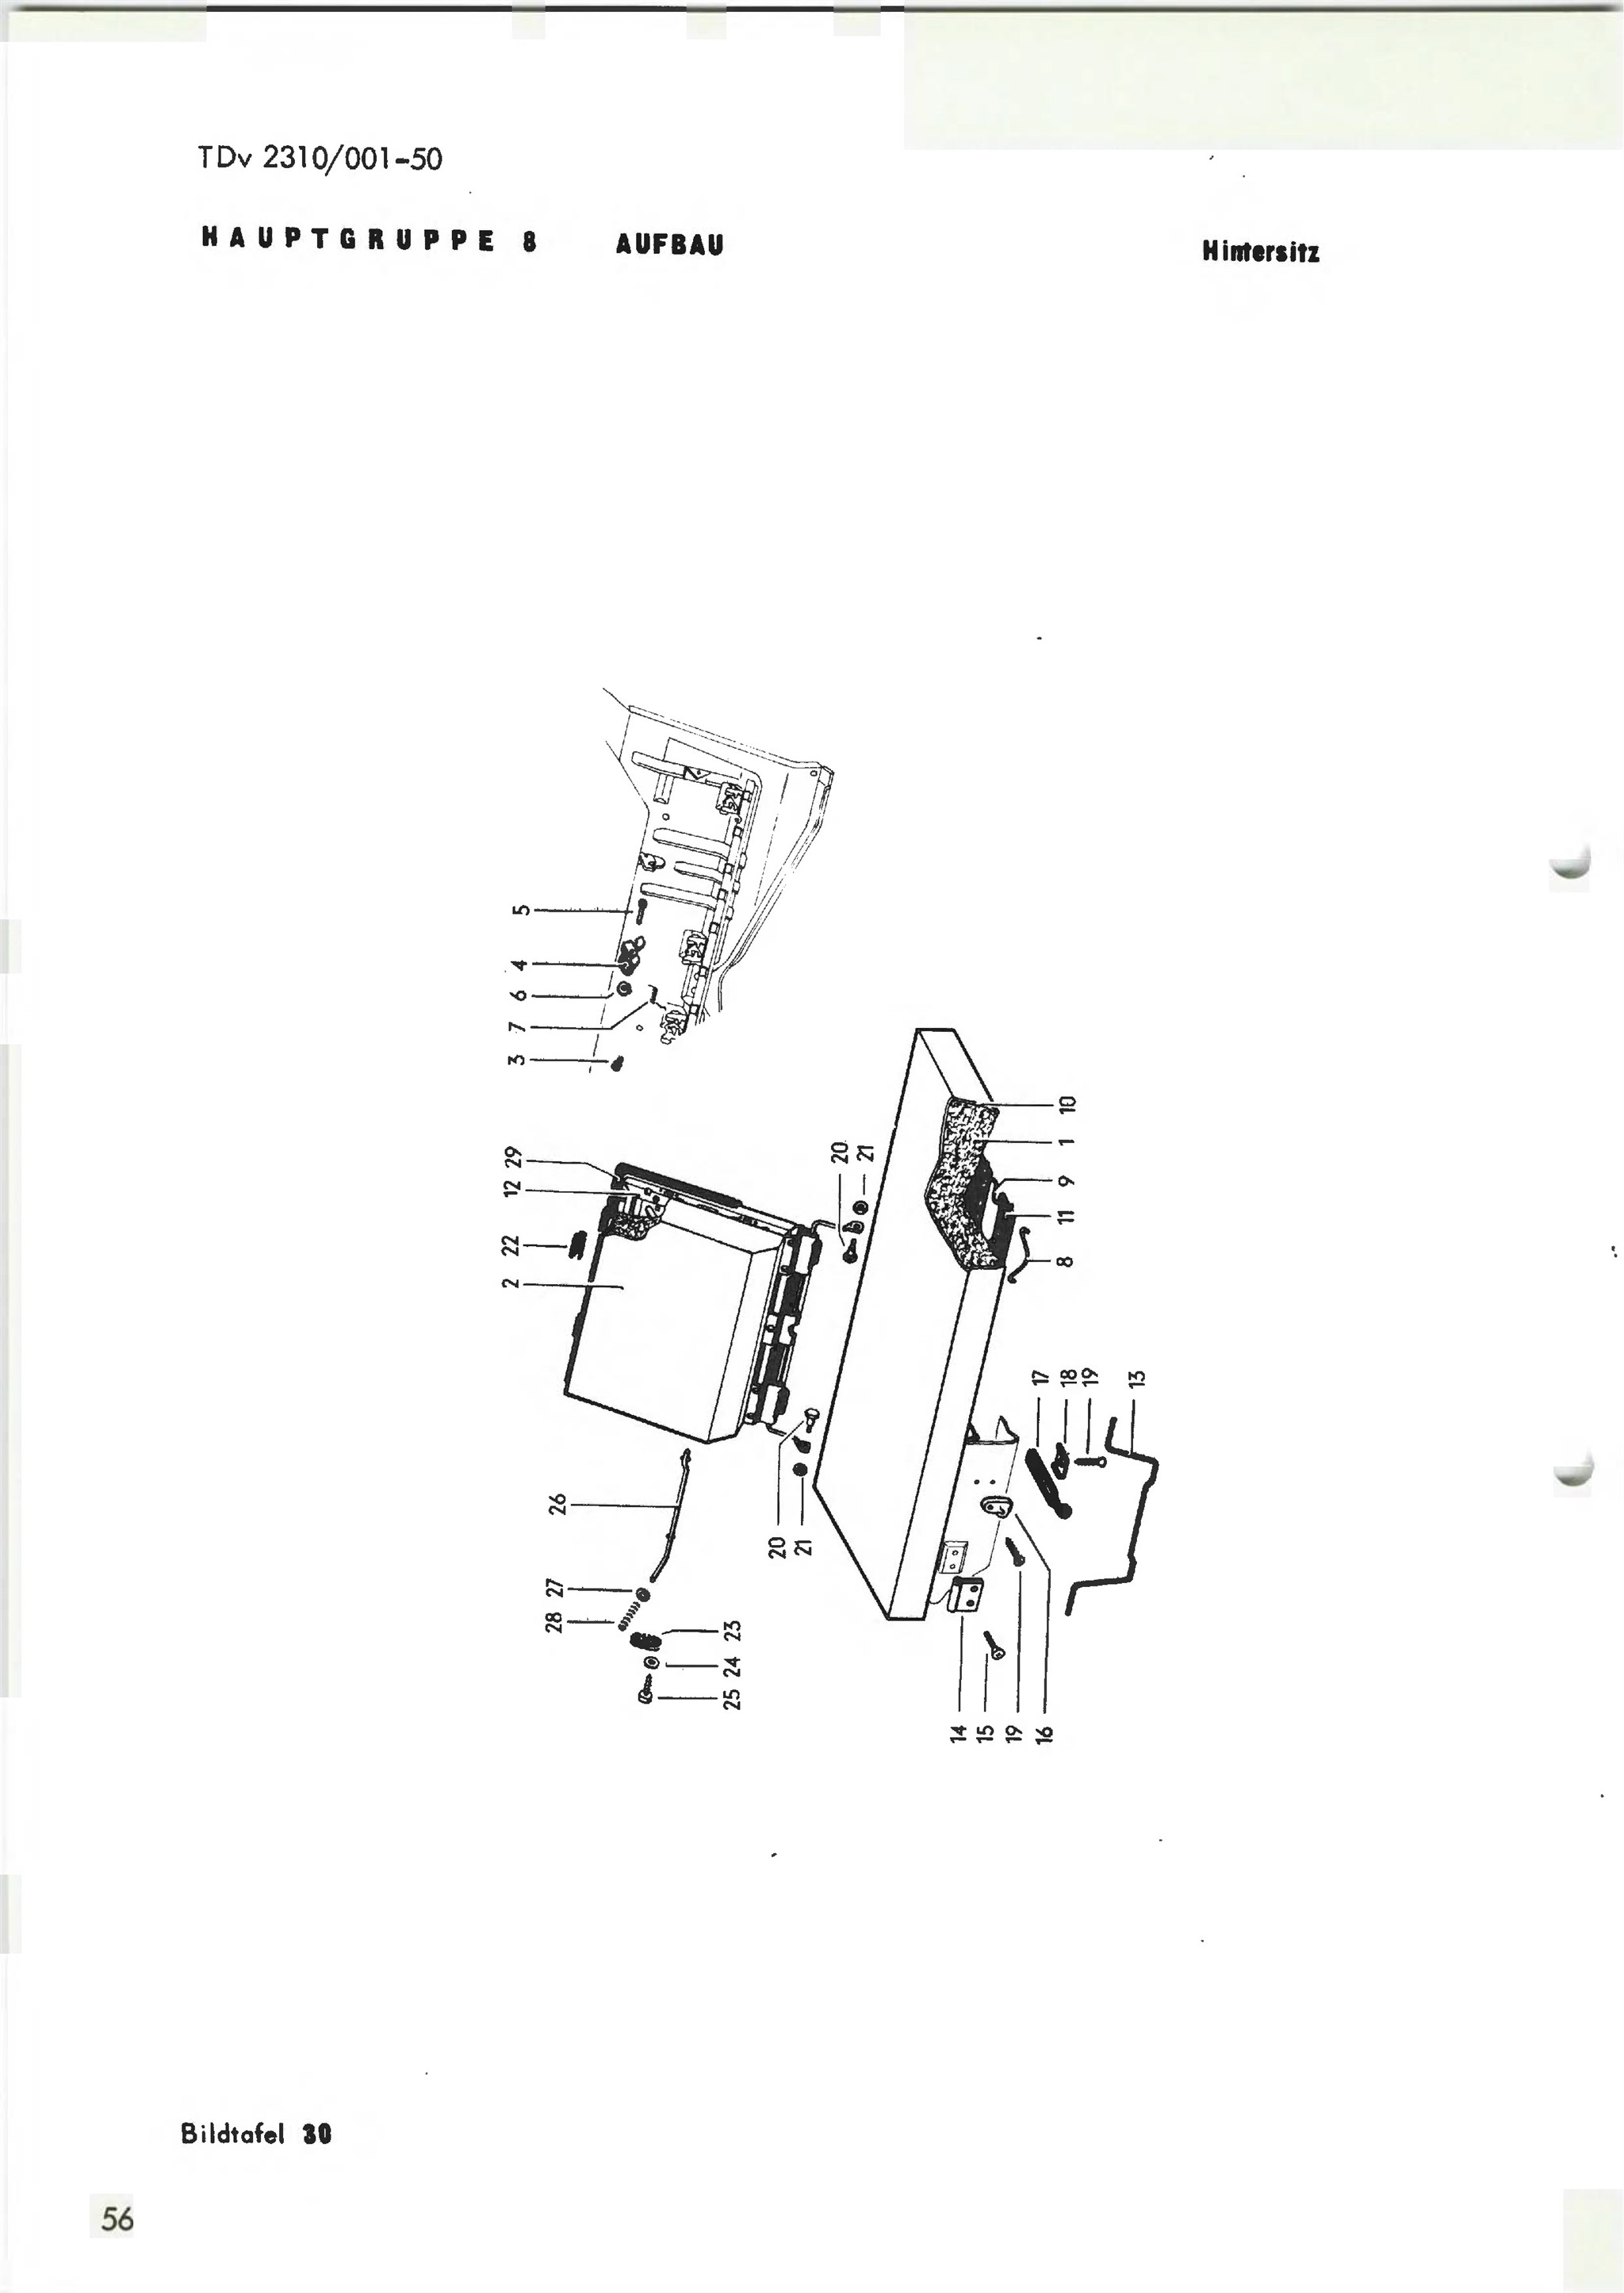 Alternator Wiring Diagram Pa-28-160 Piper Cherokee